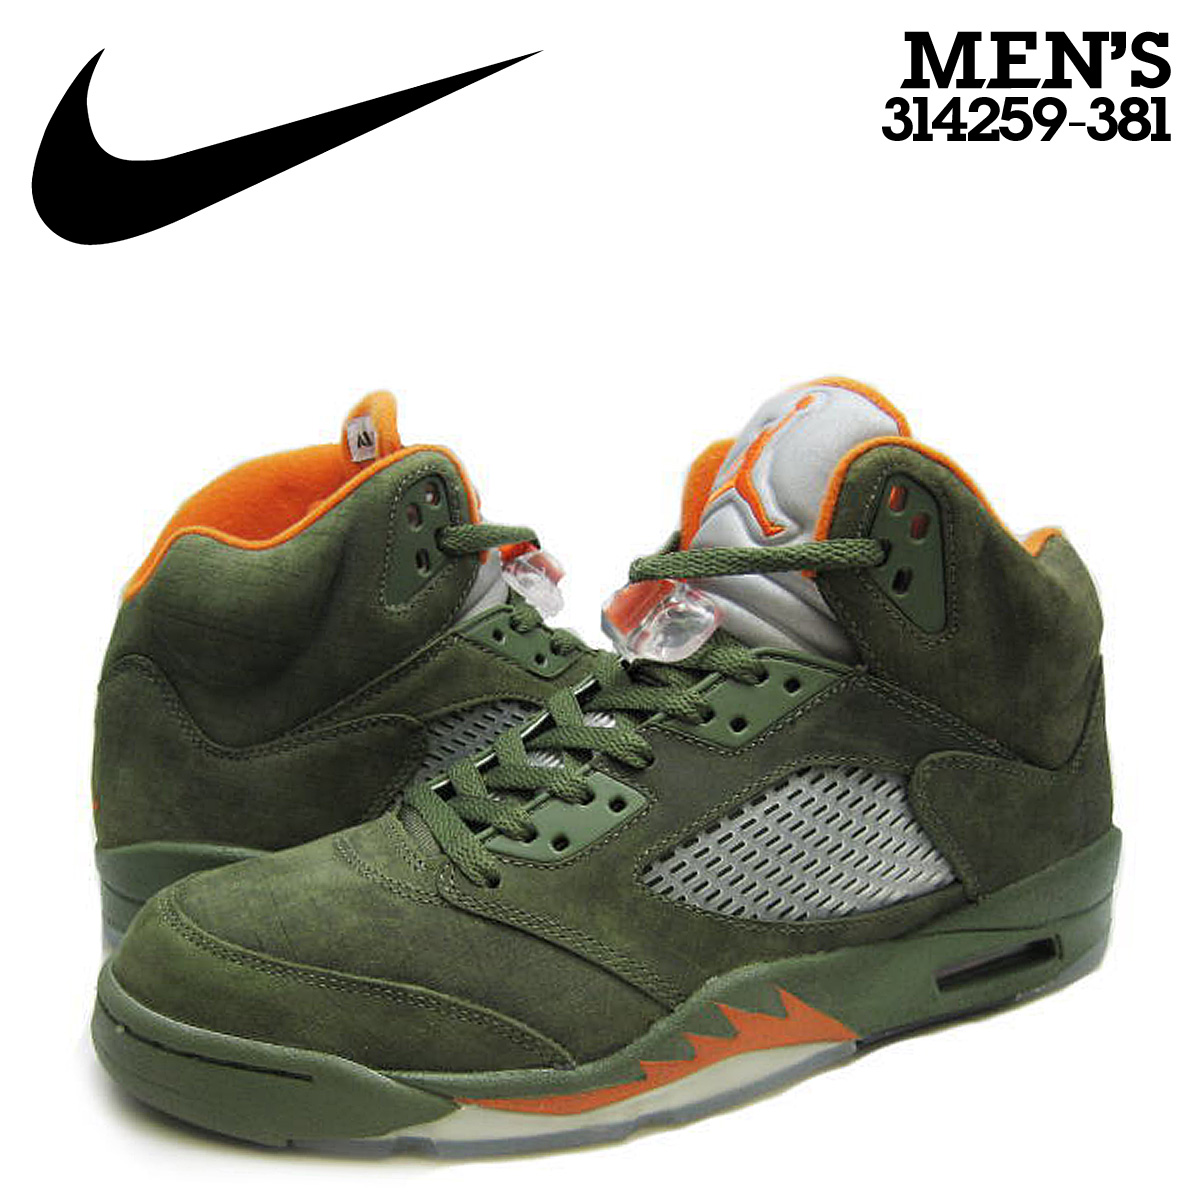 buy popular 0f021 c8ab4 NIKE Nike Air Jordan sneakers AIR JORDAN 5 RETRO LS ARMY OLIVE Air Jordan  nostalgic lifestyle 314,259-381 green men [◆]